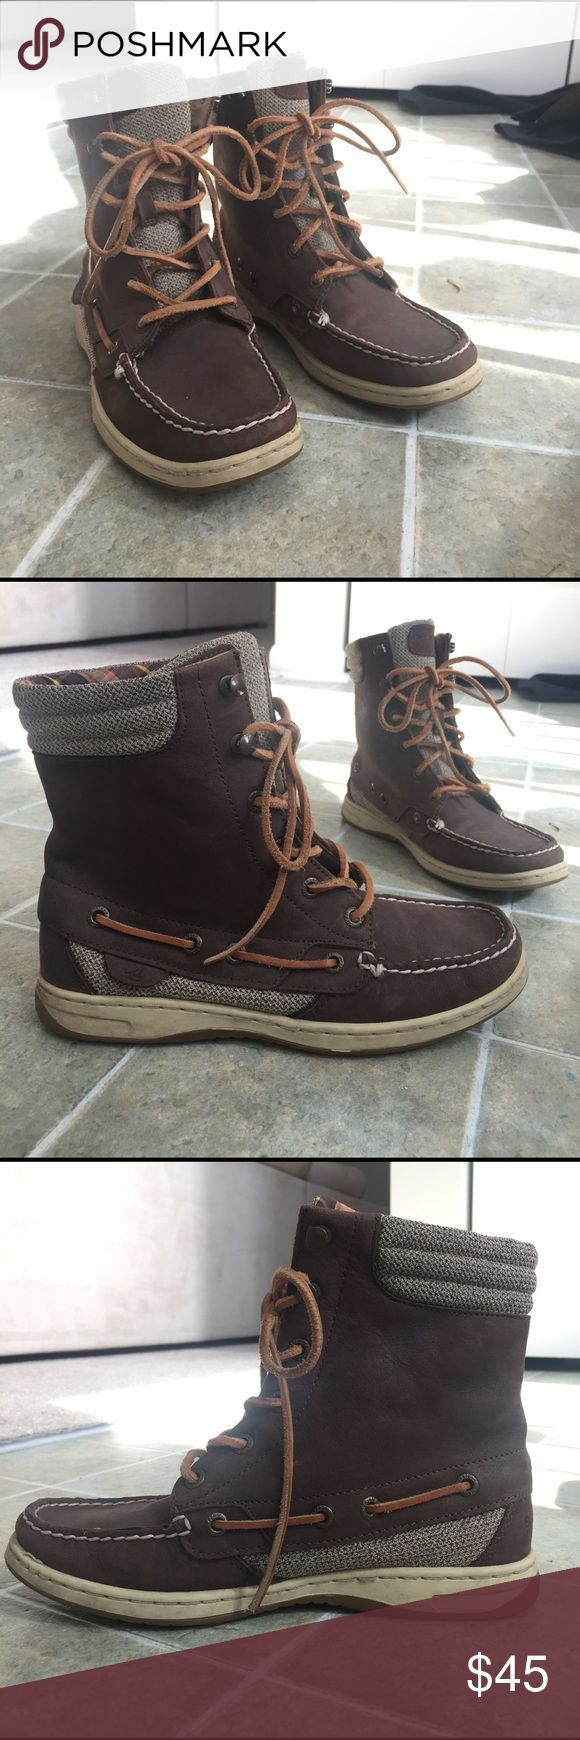 Sperry Top-Sider boots size 7 Worn once, excellent condition! Very comfortable! Sperry Top-Sider Shoes Ankle Boots & Booties